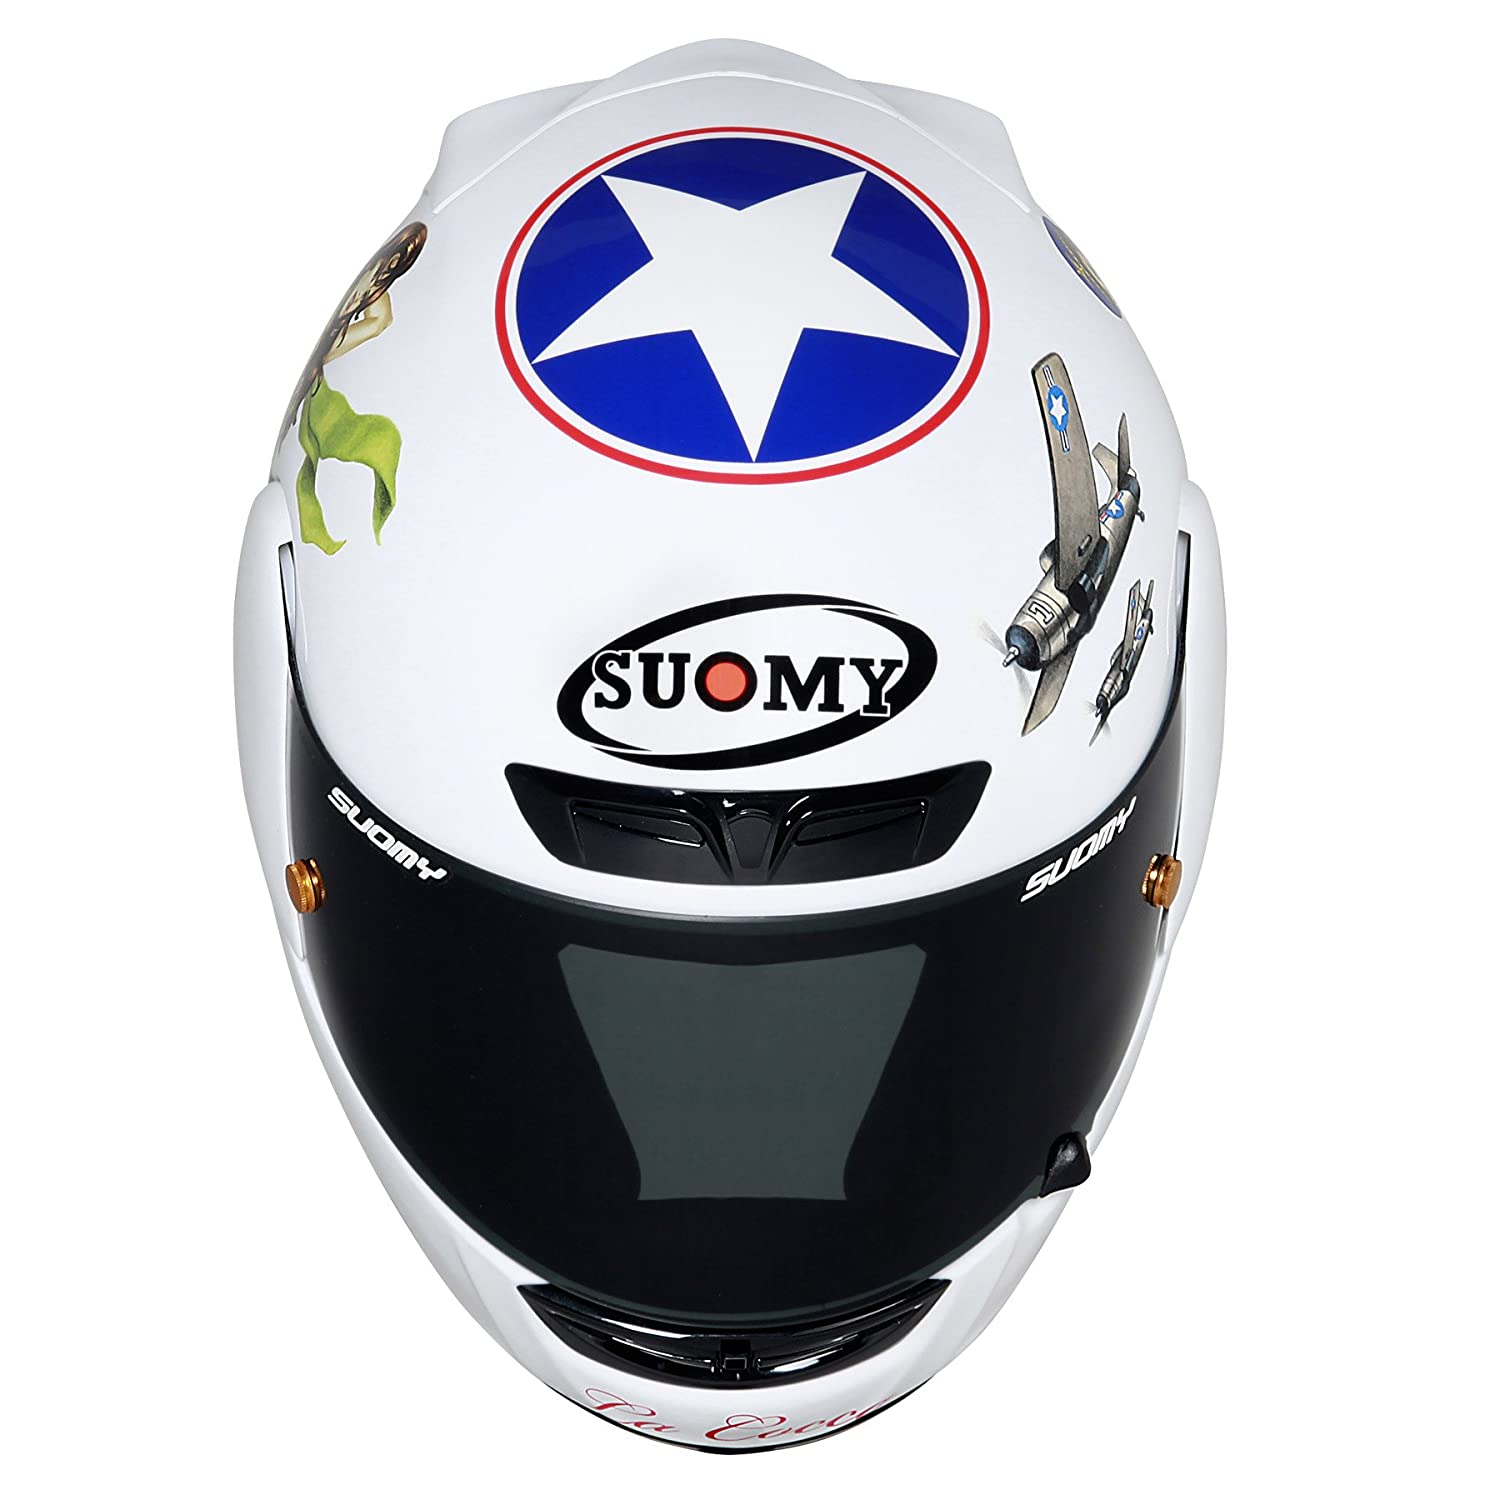 bde0408304763 Suomy - Casco Apex